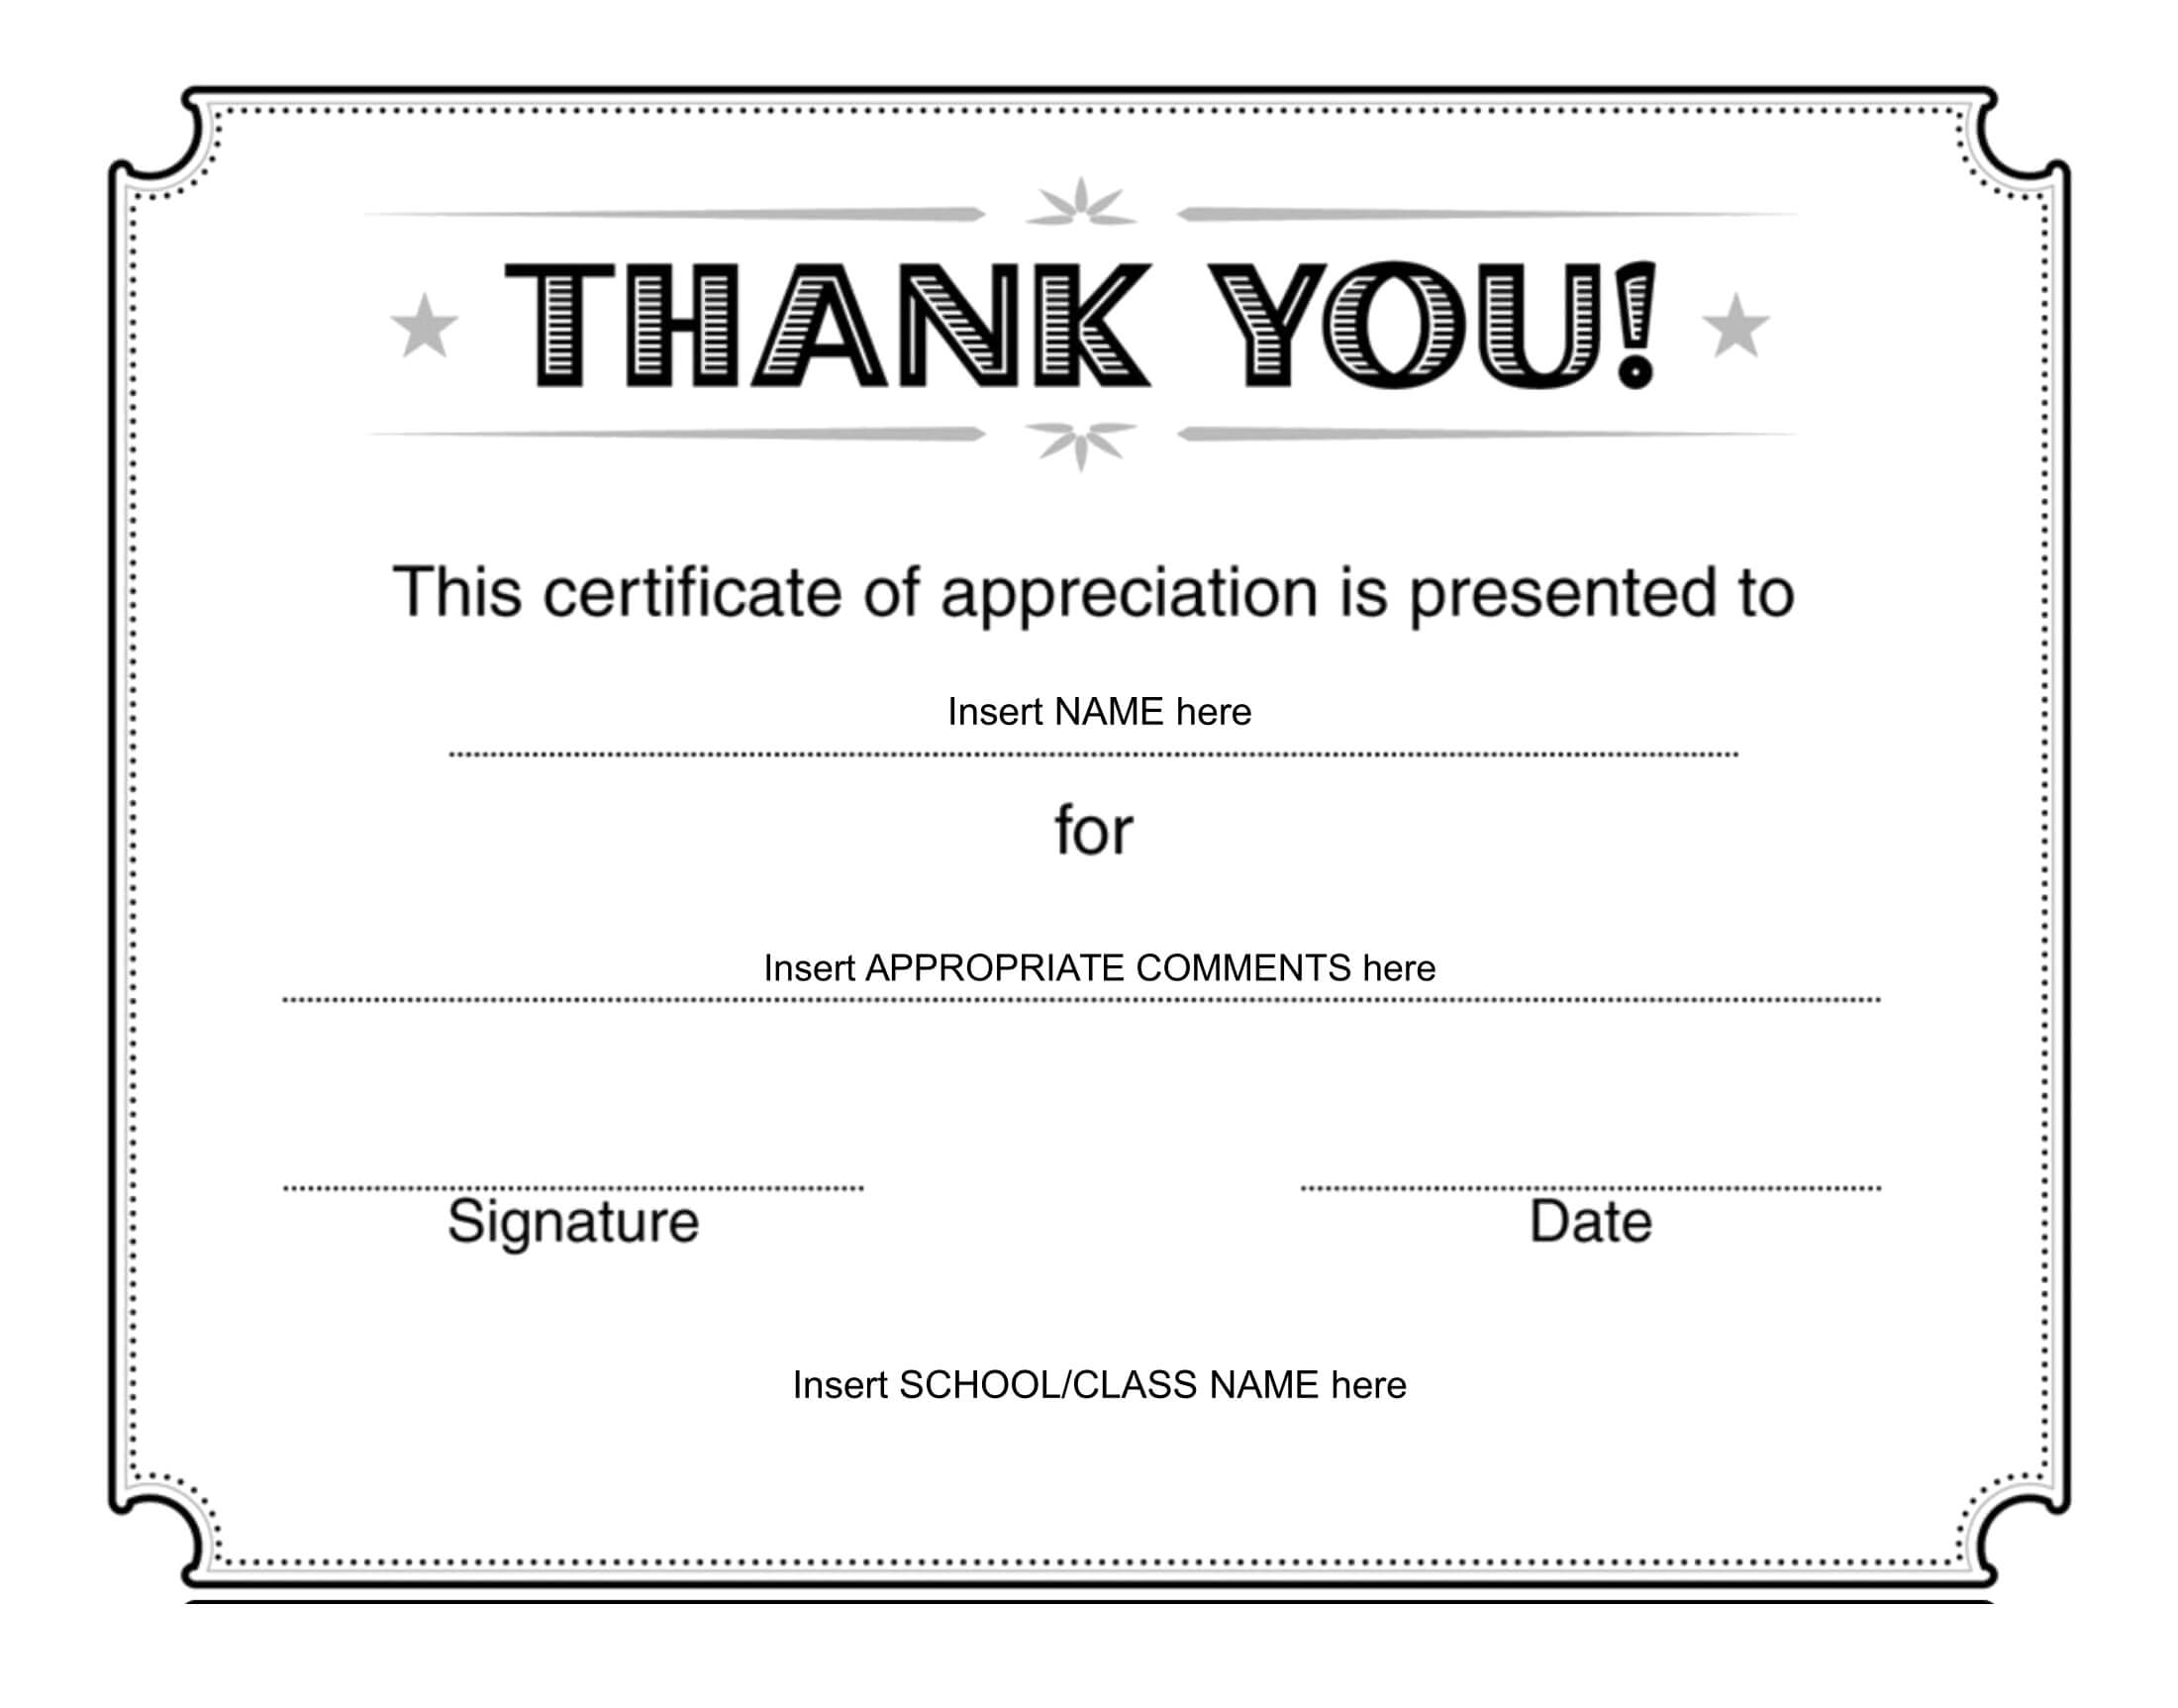 Thank You Certificate - Download Free Template with Farewell Certificate Template